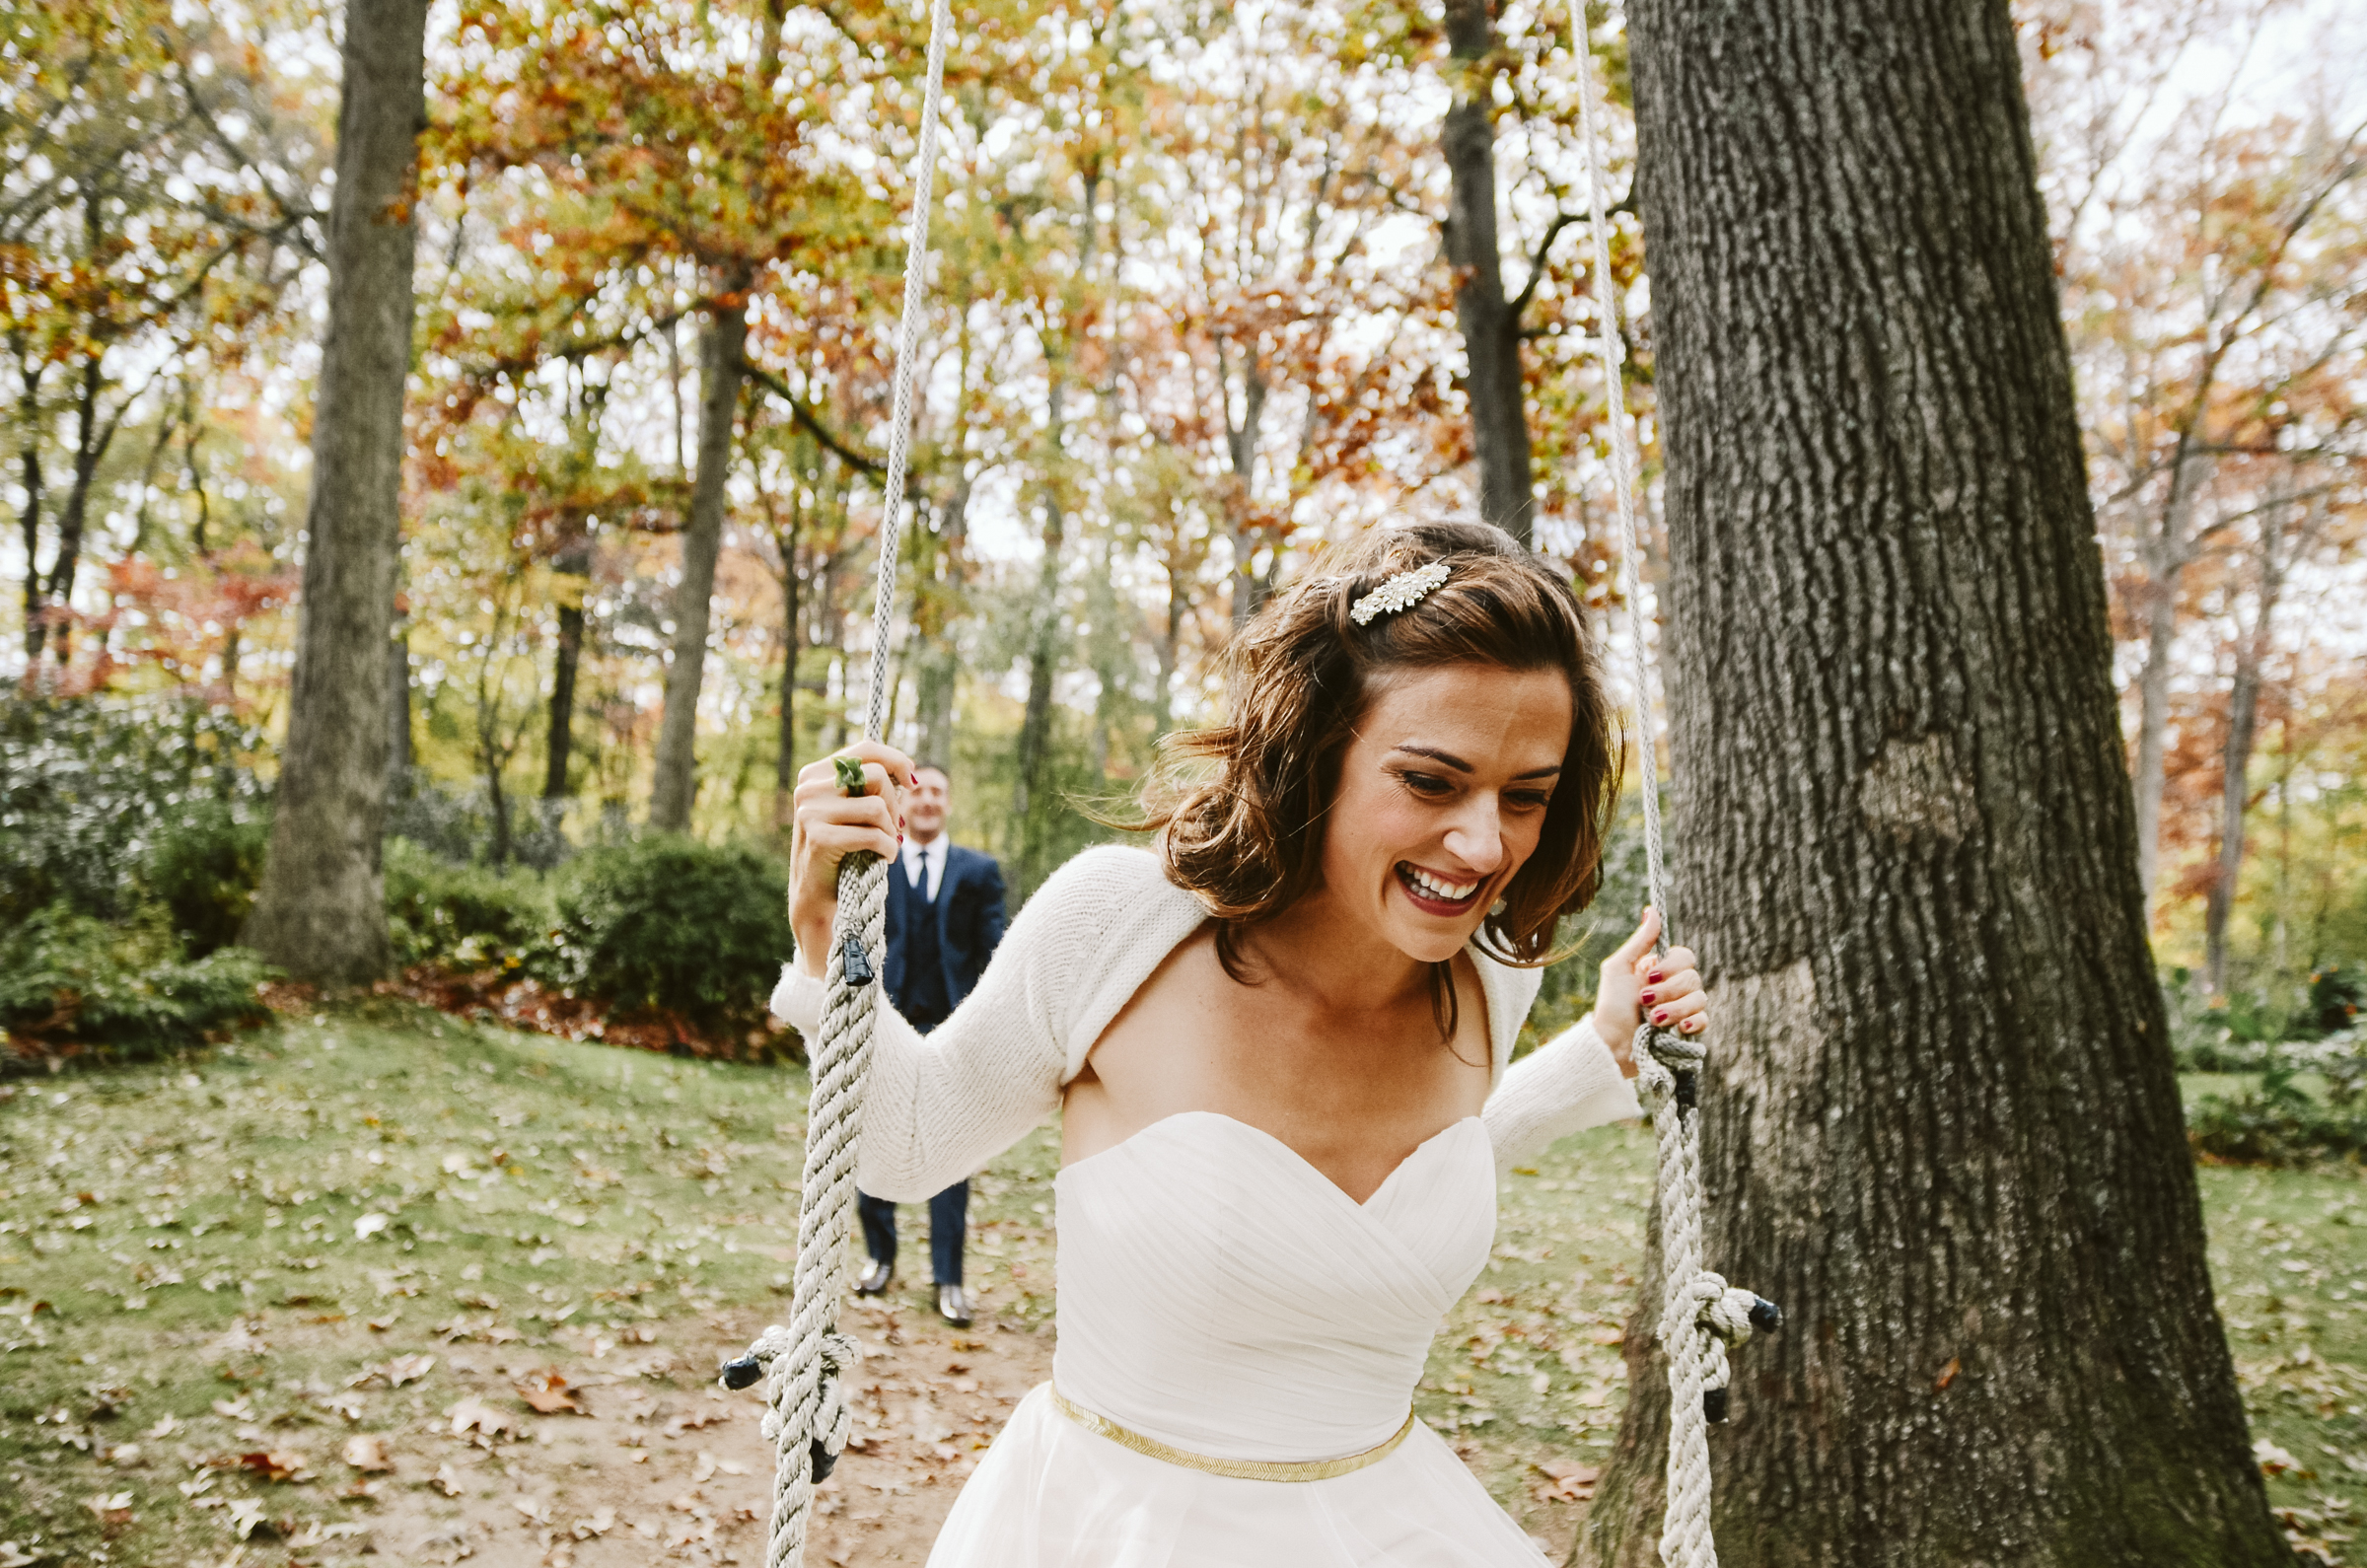 Jen and Drew's Wedding Edited 2019 web-15.jpg